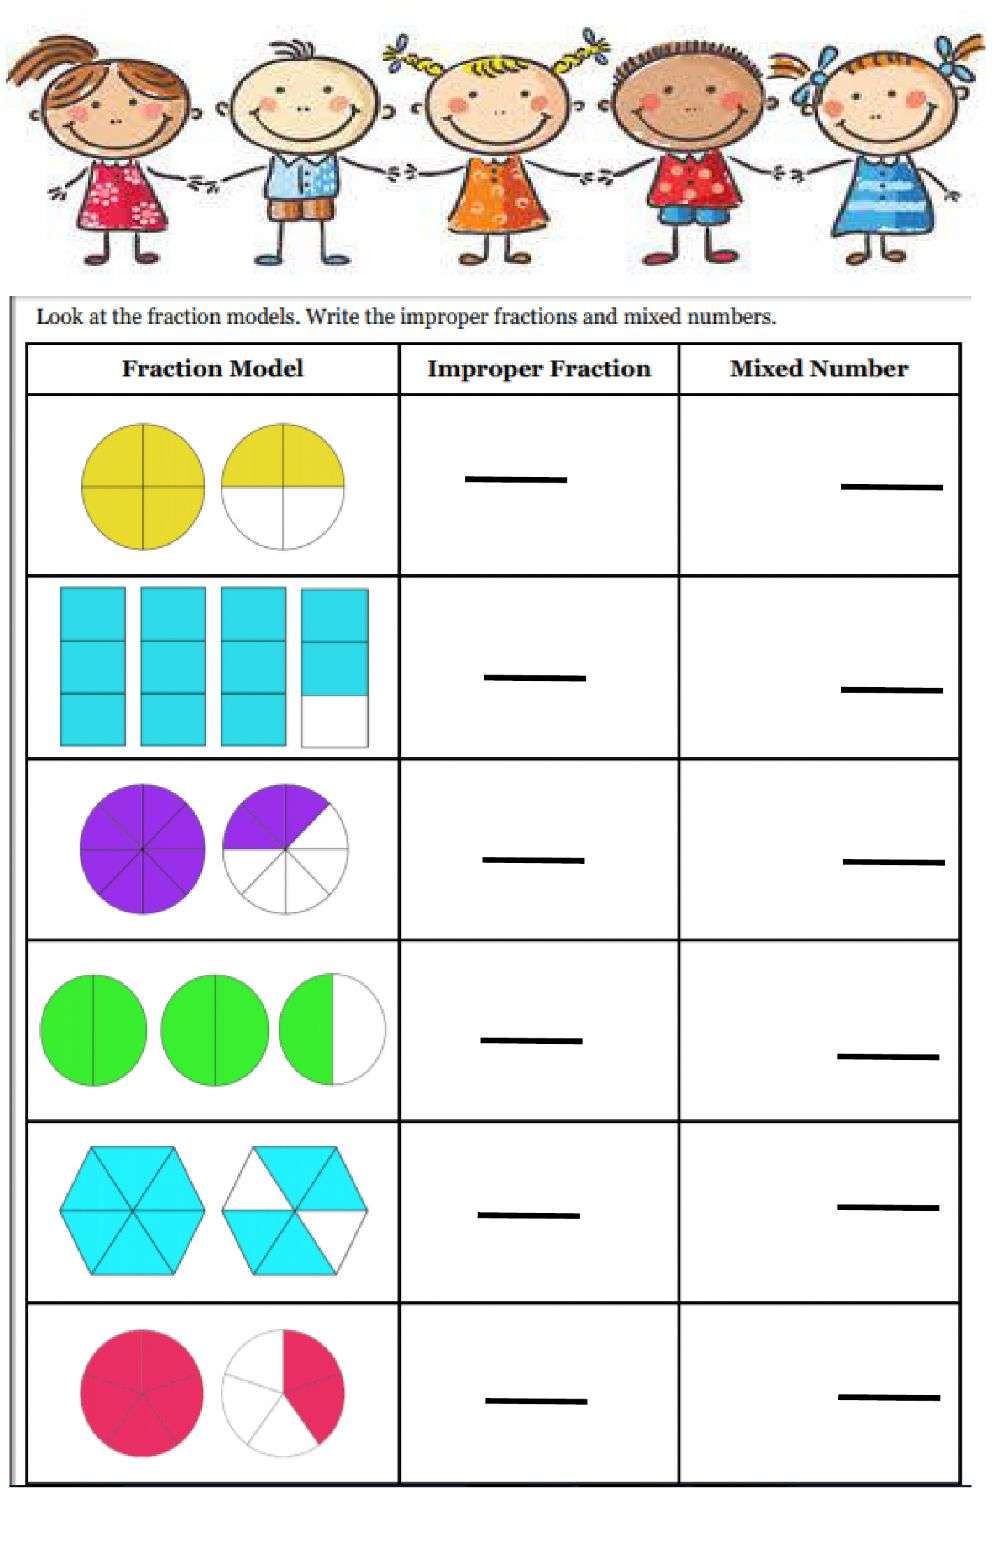 Fractions interactive exercise for Grade 3